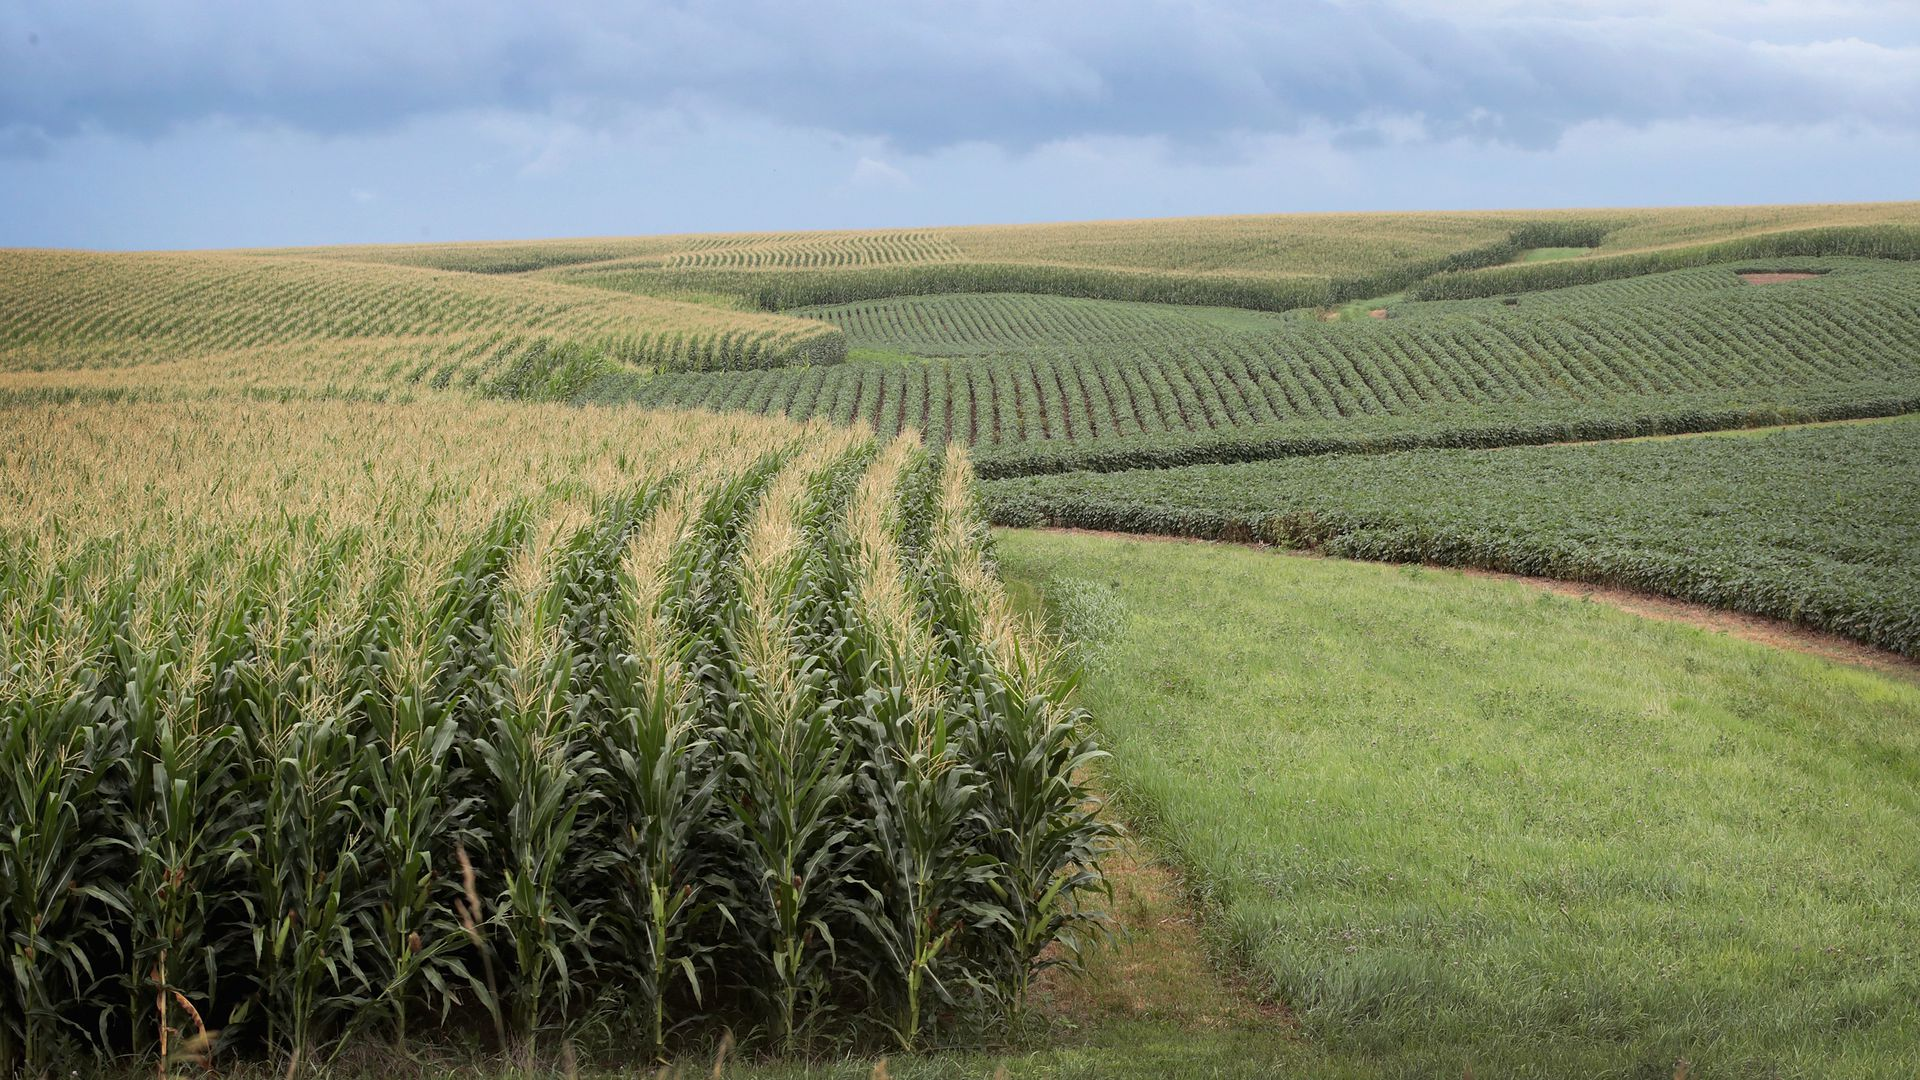 A photo of a crop field